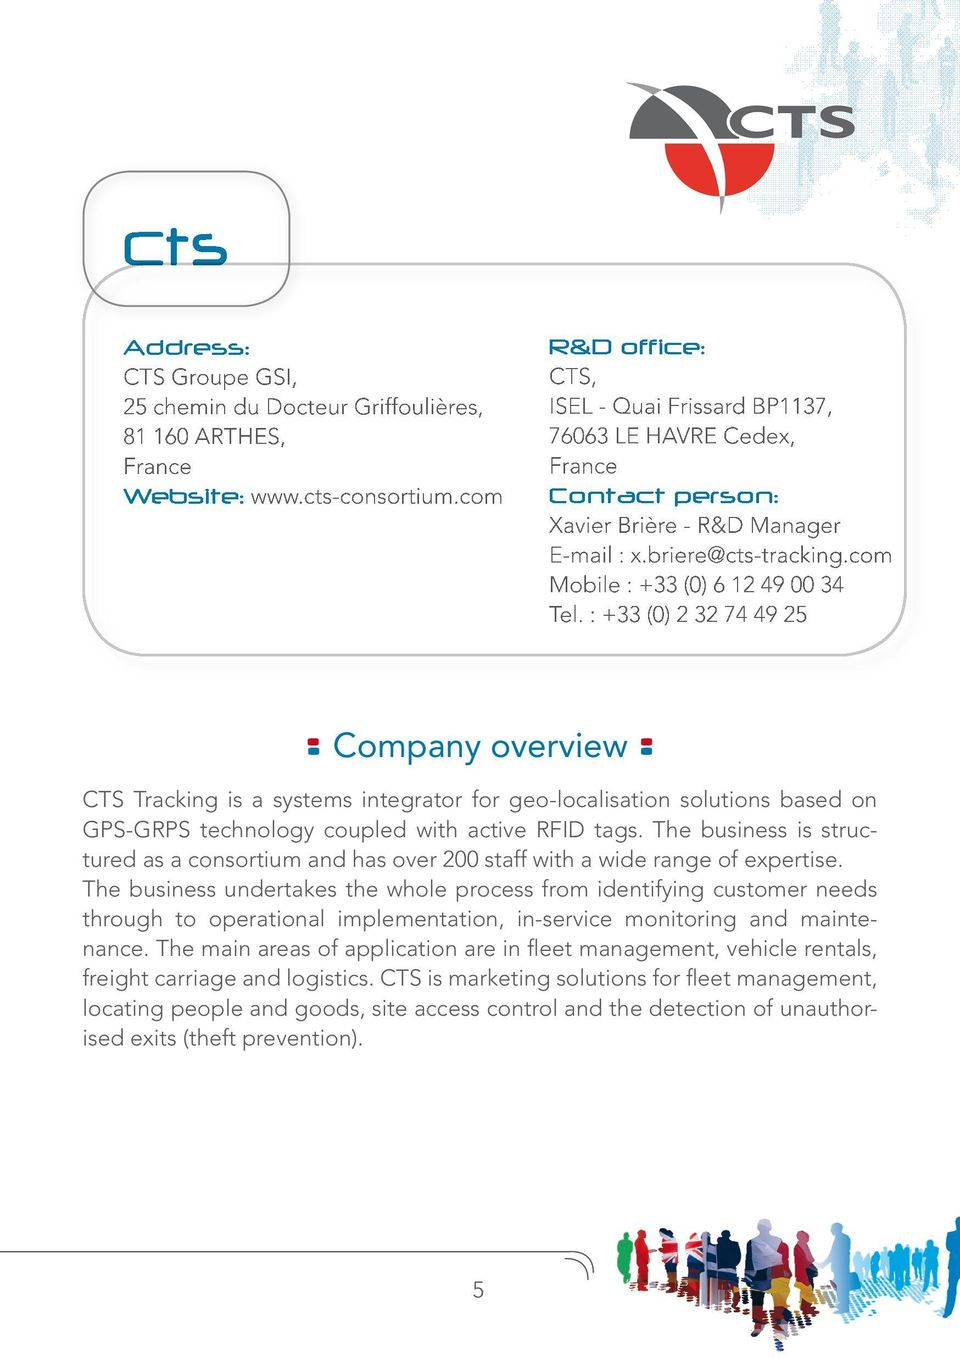 : +33 (0) 2 32 74 49 25 Company overview CTS Tracking is a systems integrator for geo-localisation solutions based on GPS-GRPS technology coupled with active RFID tags.